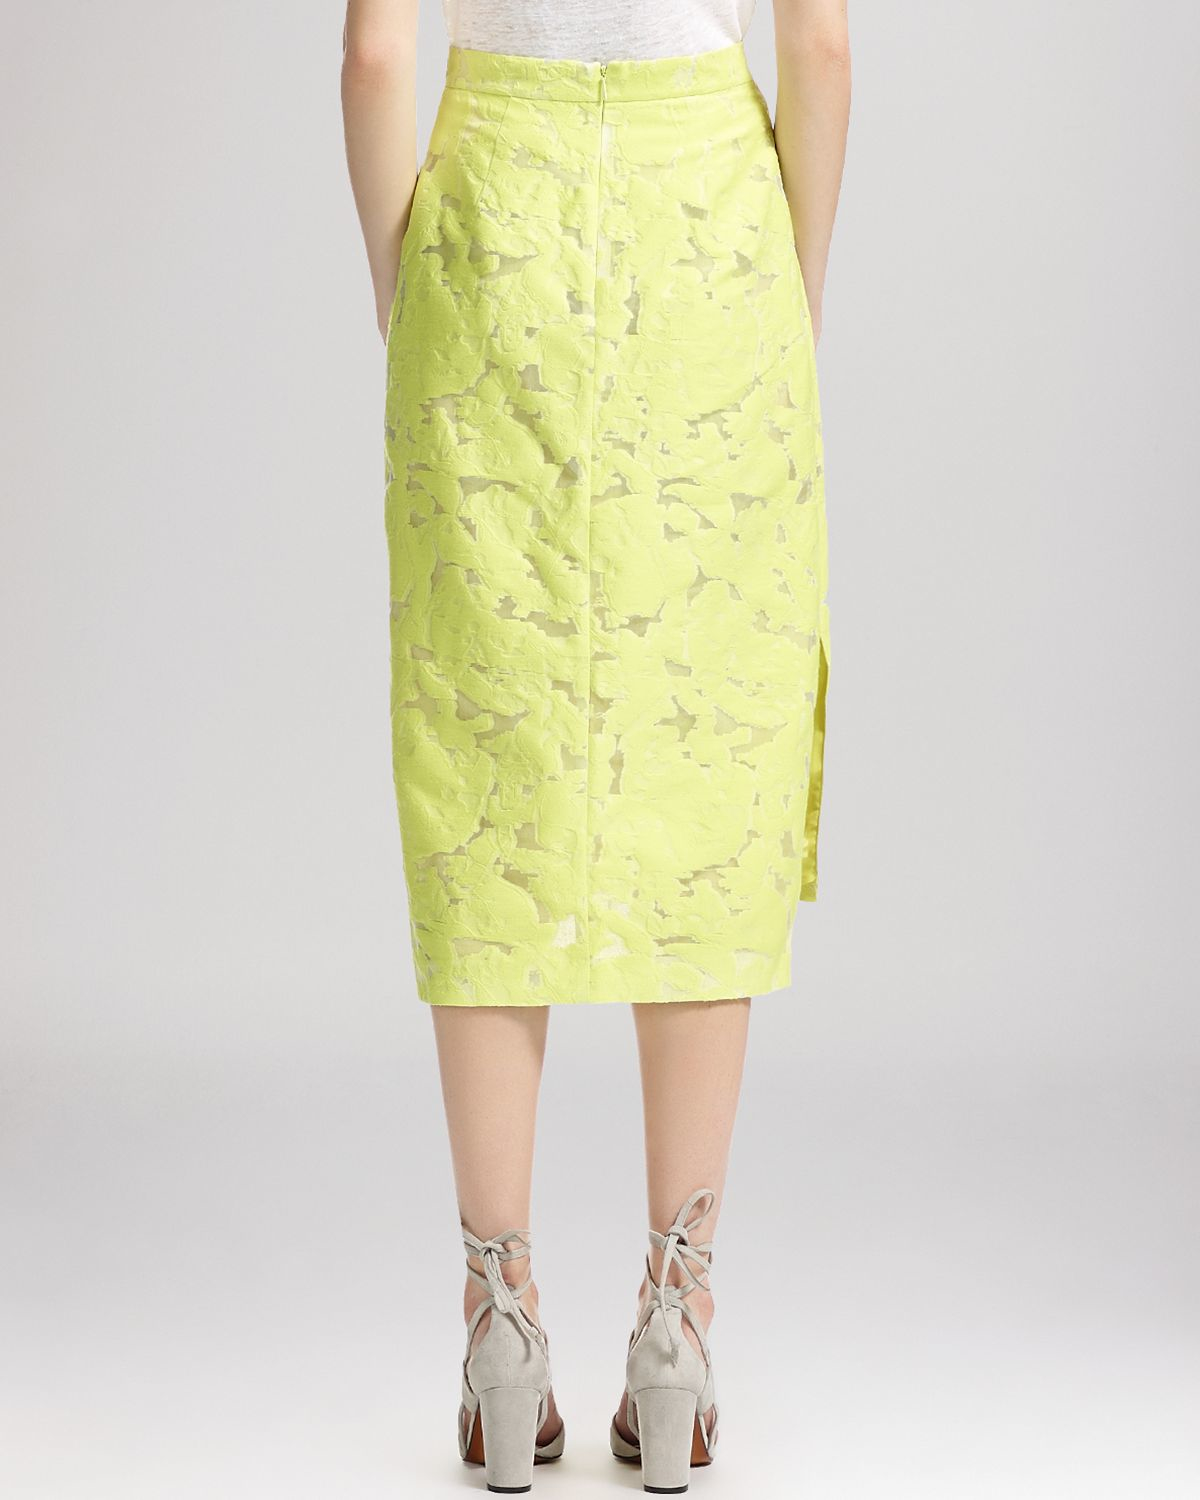 whistles leanora burnout lace pencil skirt in yellow lyst